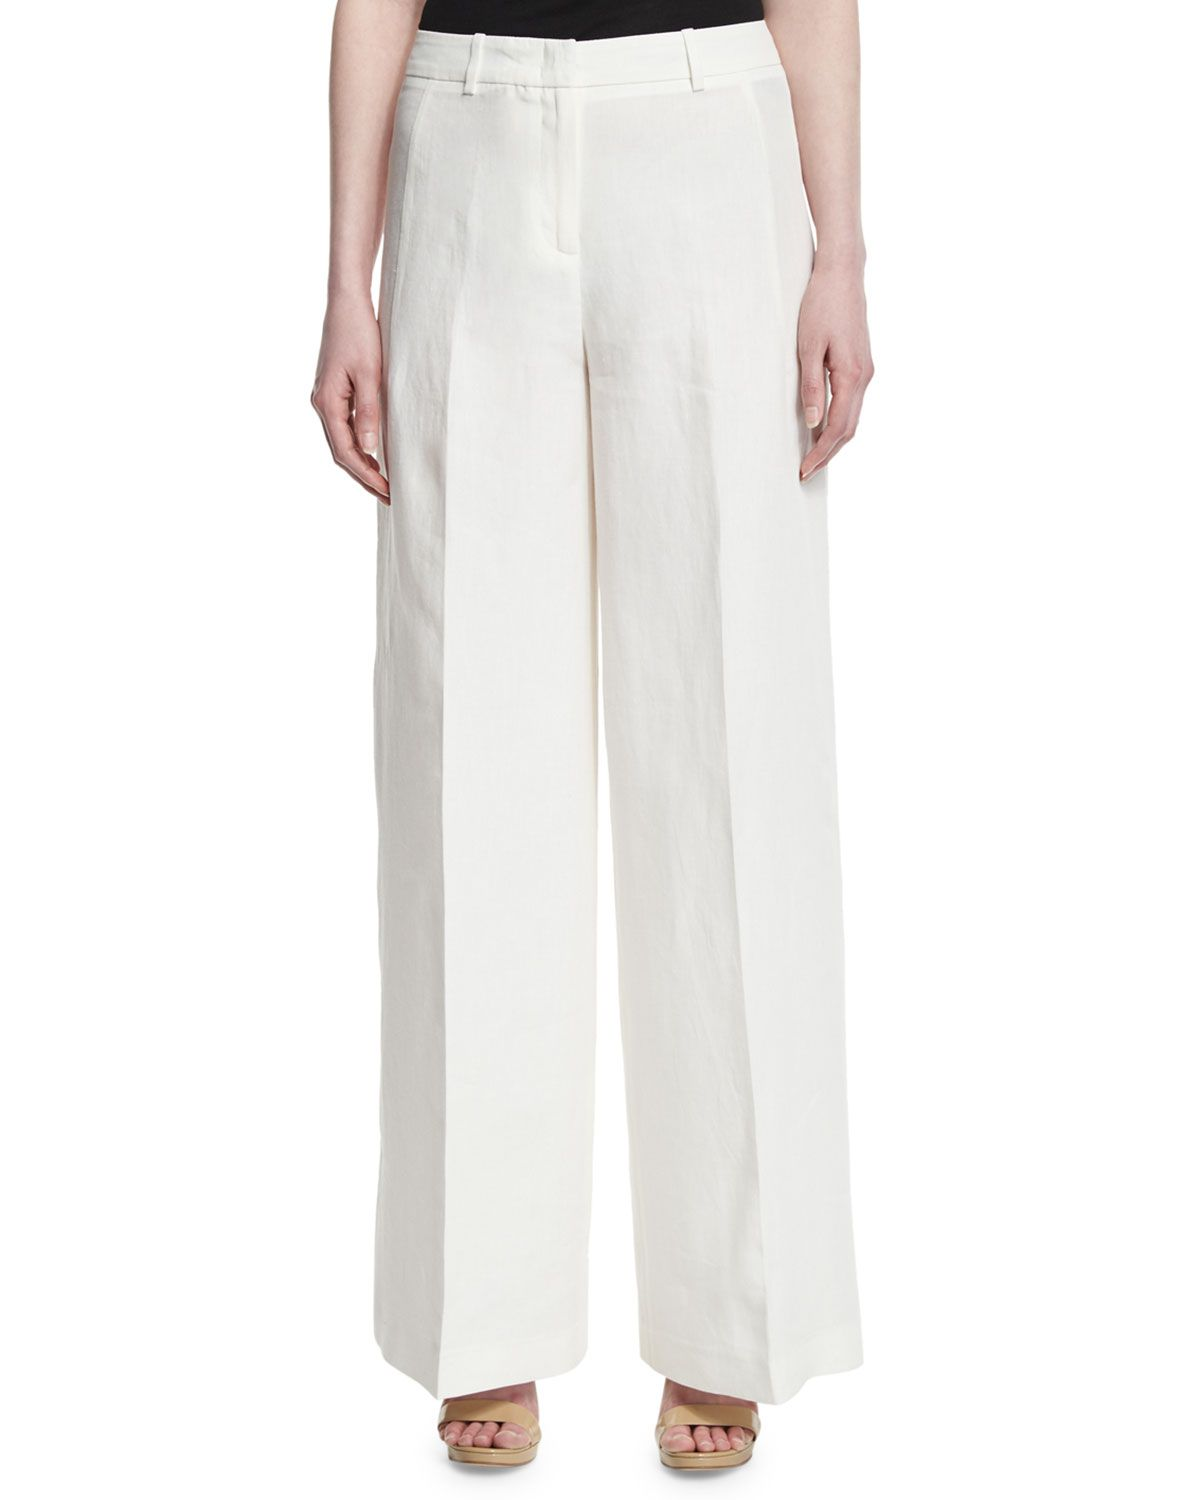 High-Waist Linen Wide-Leg Pants, White